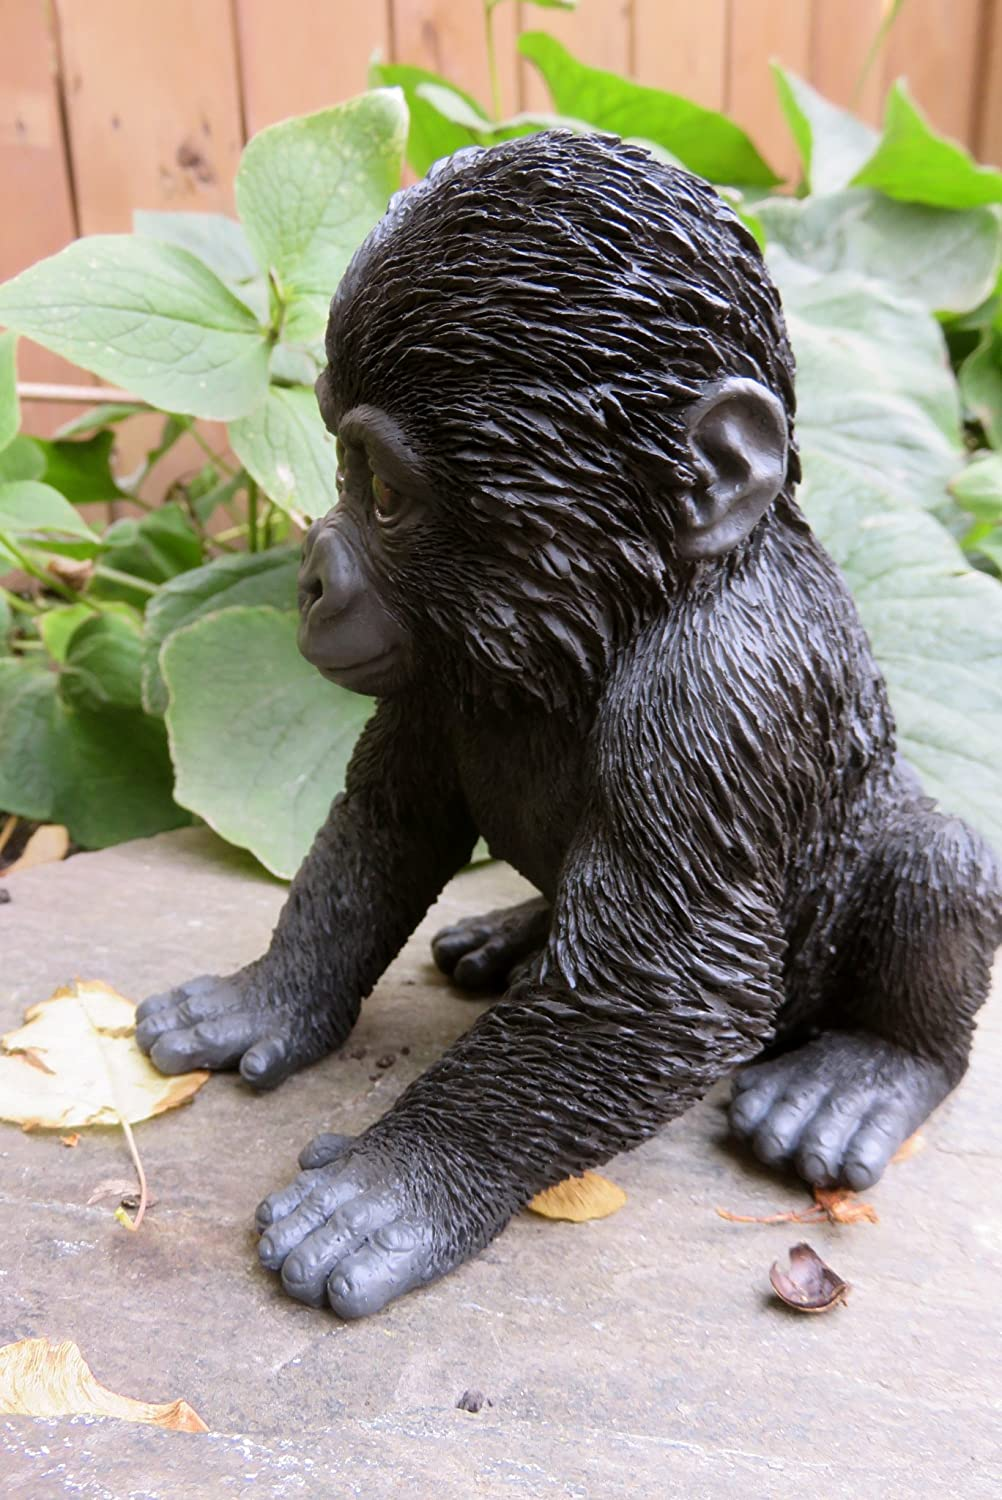 ChosenTreasures4You Baby Gorilla Figurine Sitting